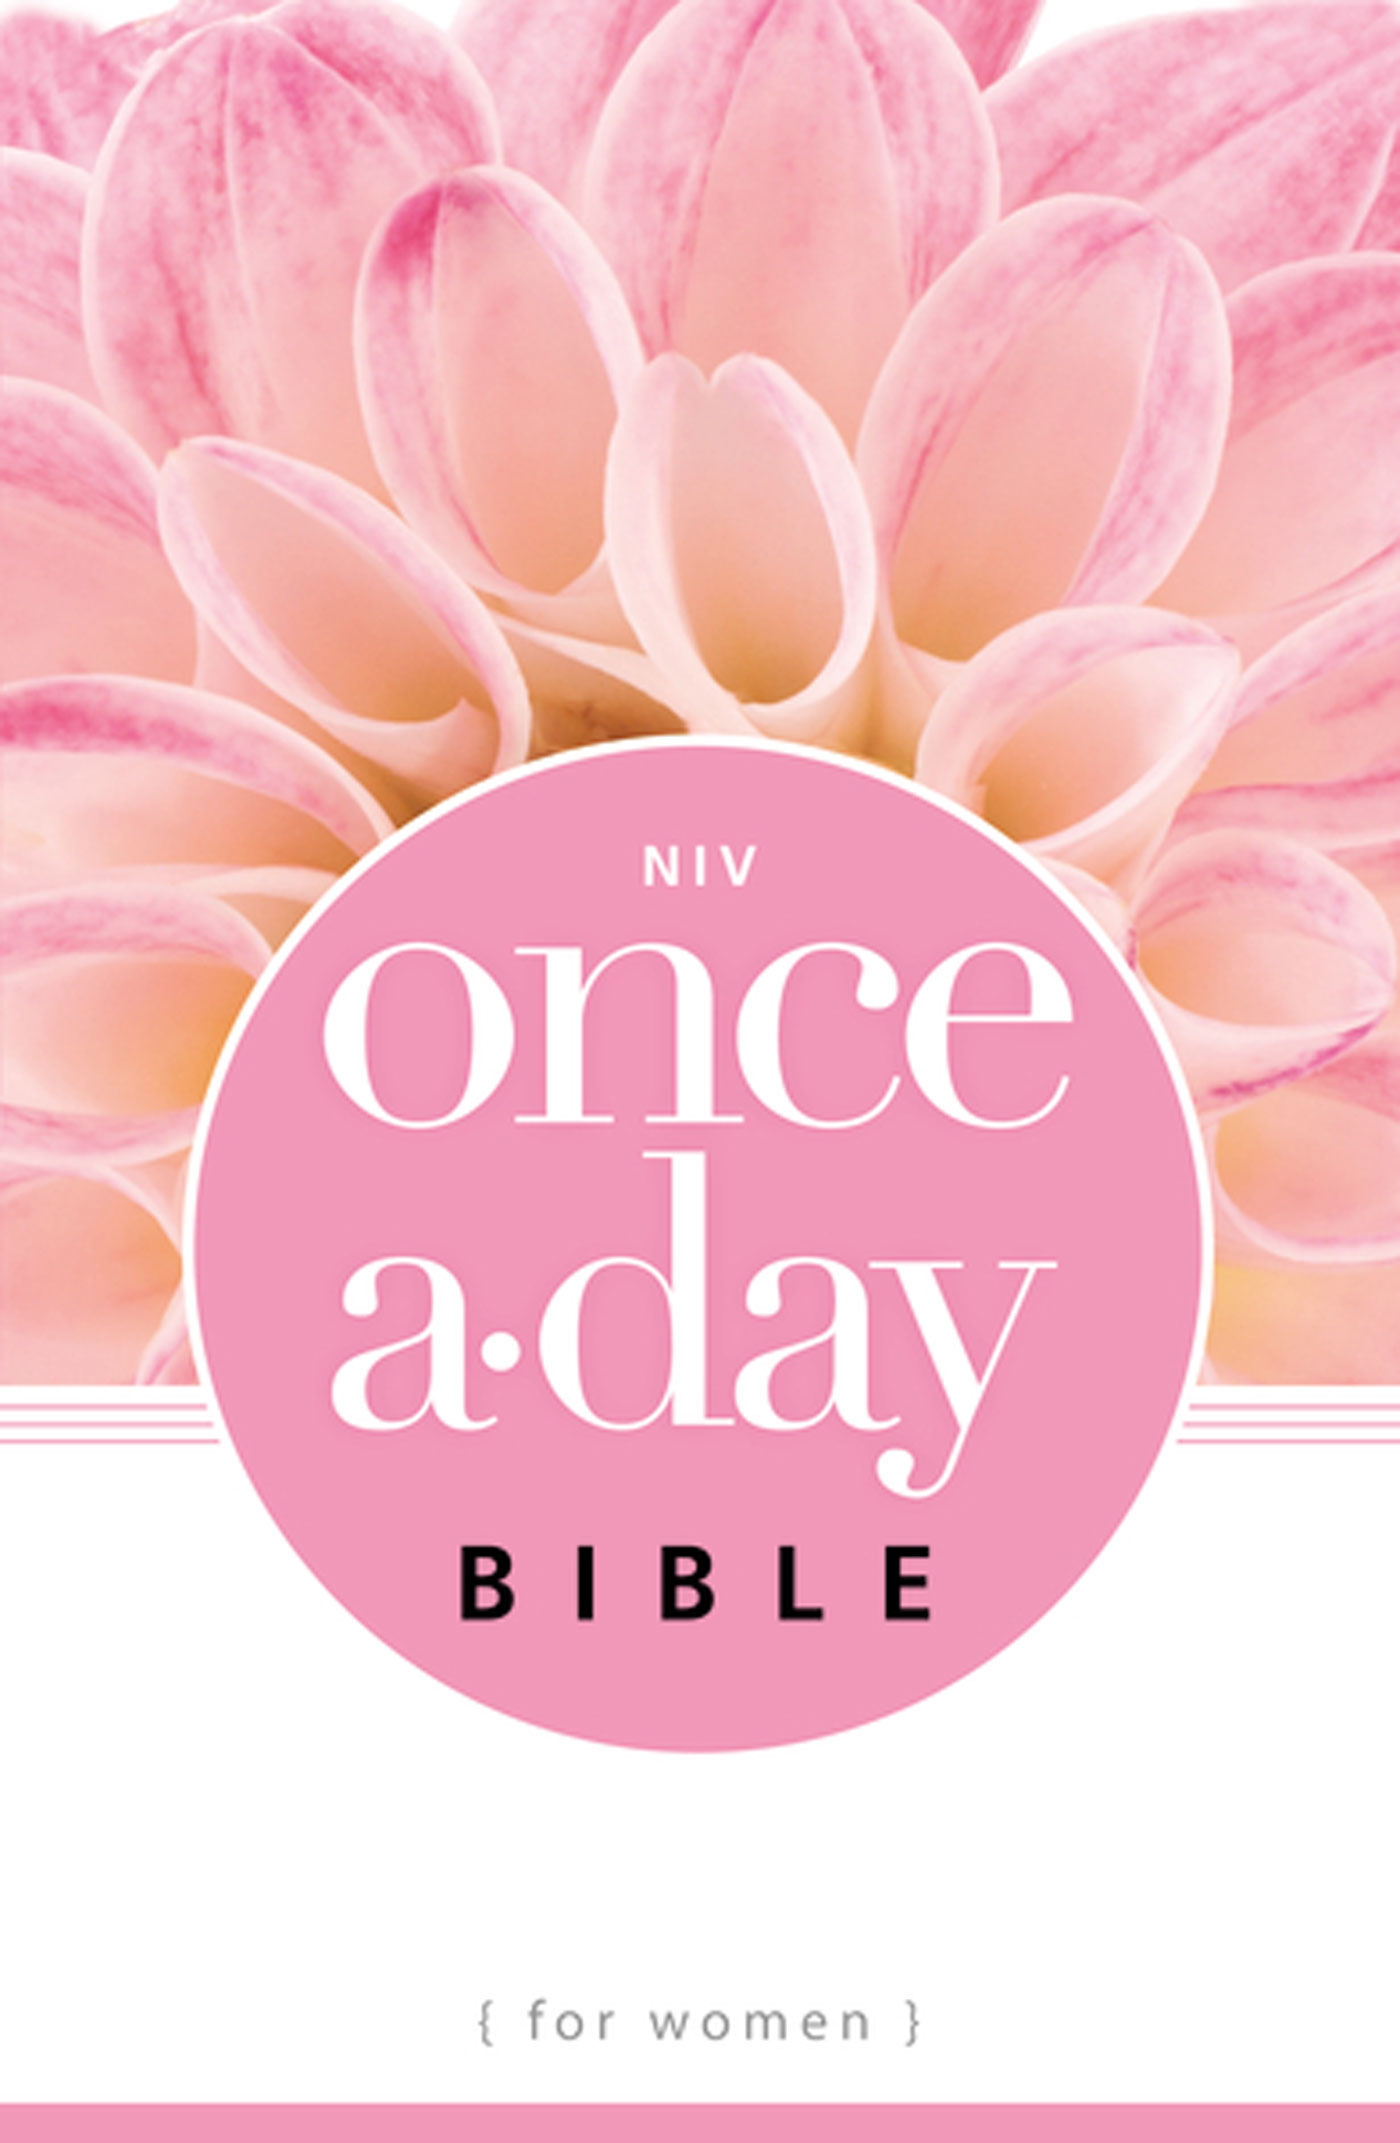 NIV Once-A-Day Bible for Women By: Zondervan